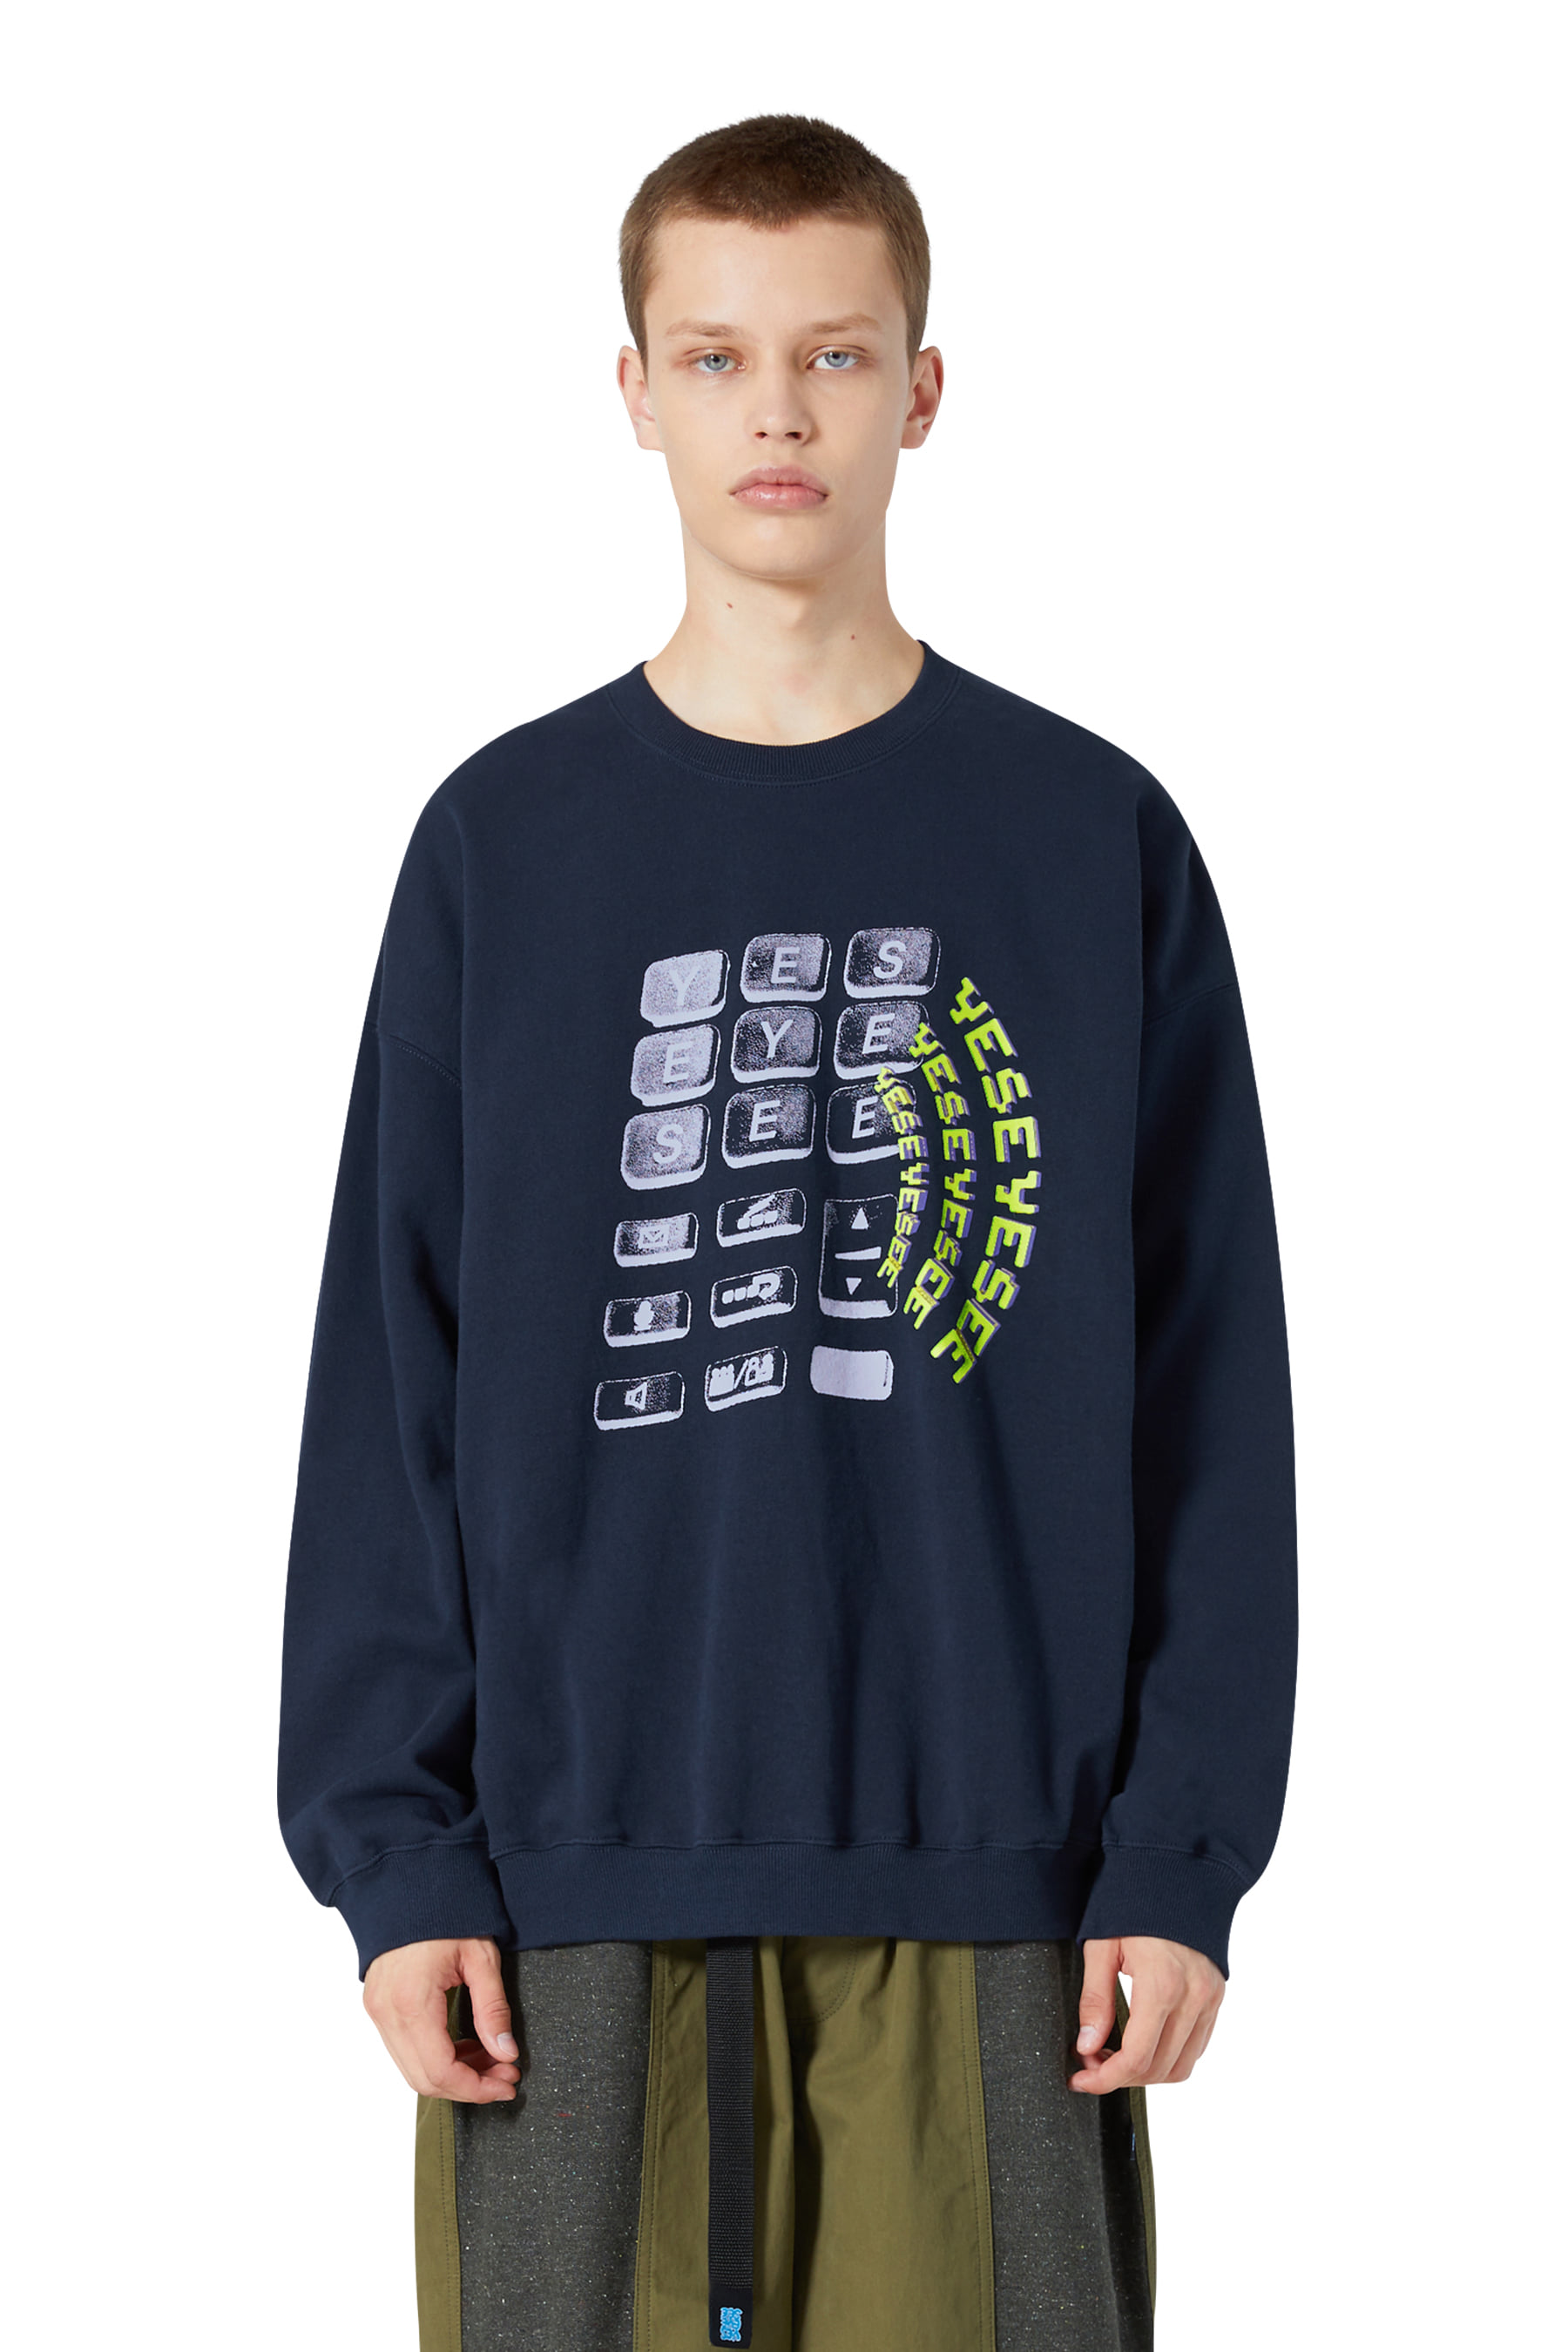 Y.E.S Wifi Sweatshirts Navy